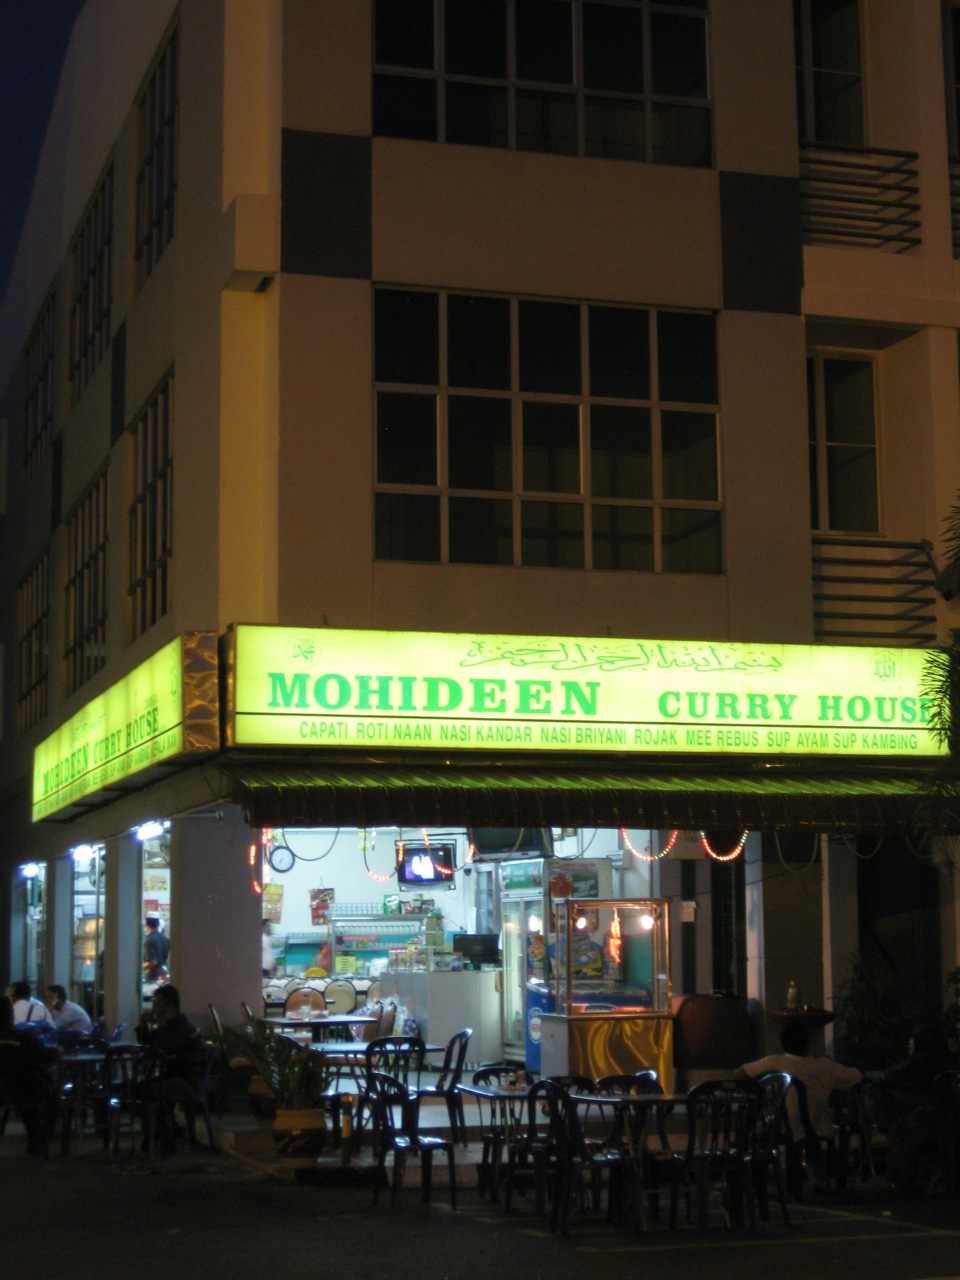 Mohideen Curry House